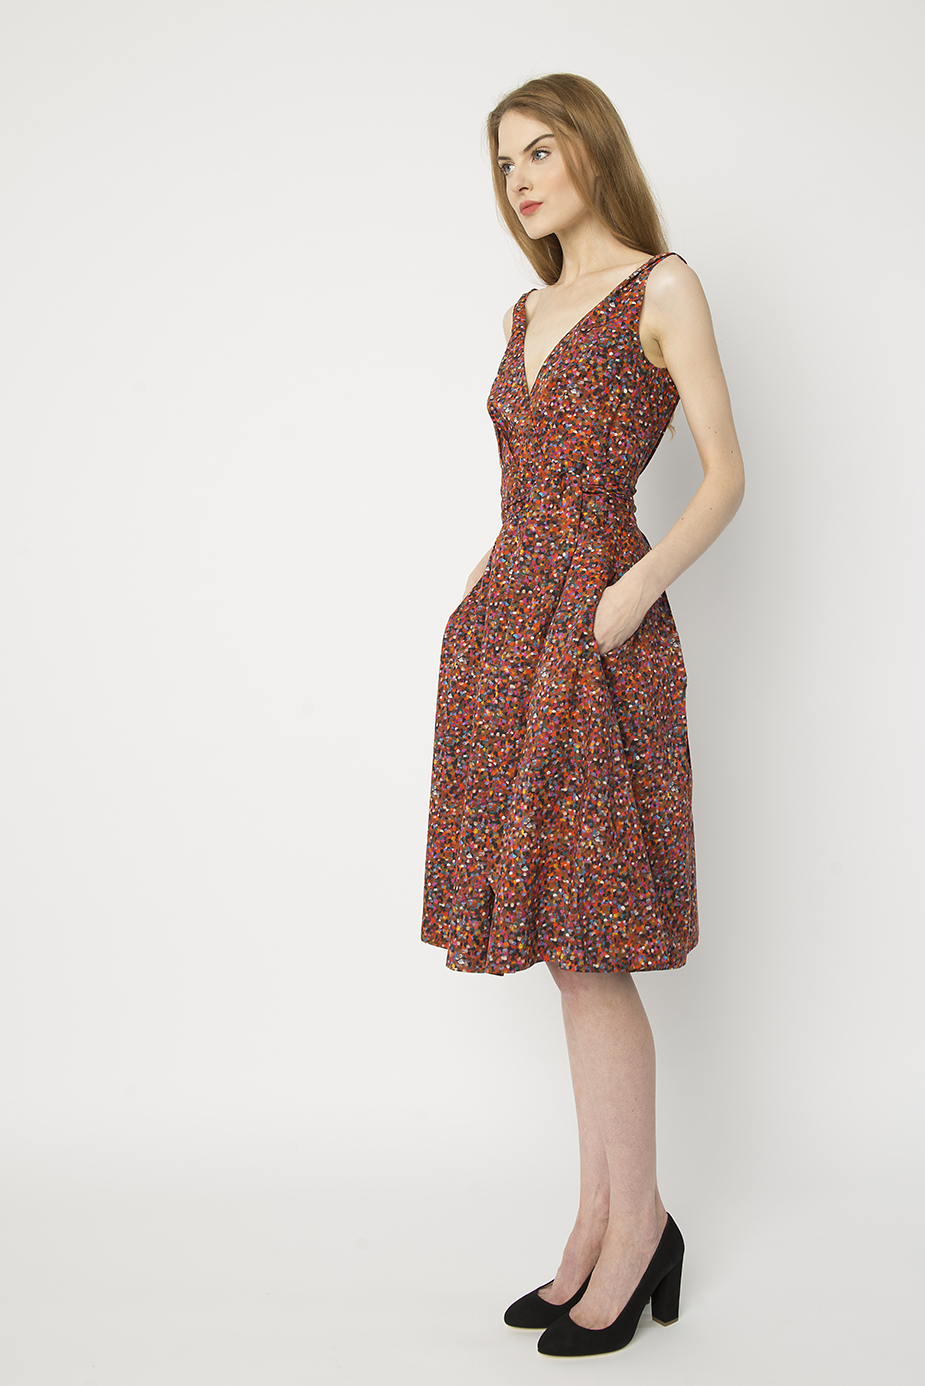 summer pointillism gpd 2 - Garden Party Dress